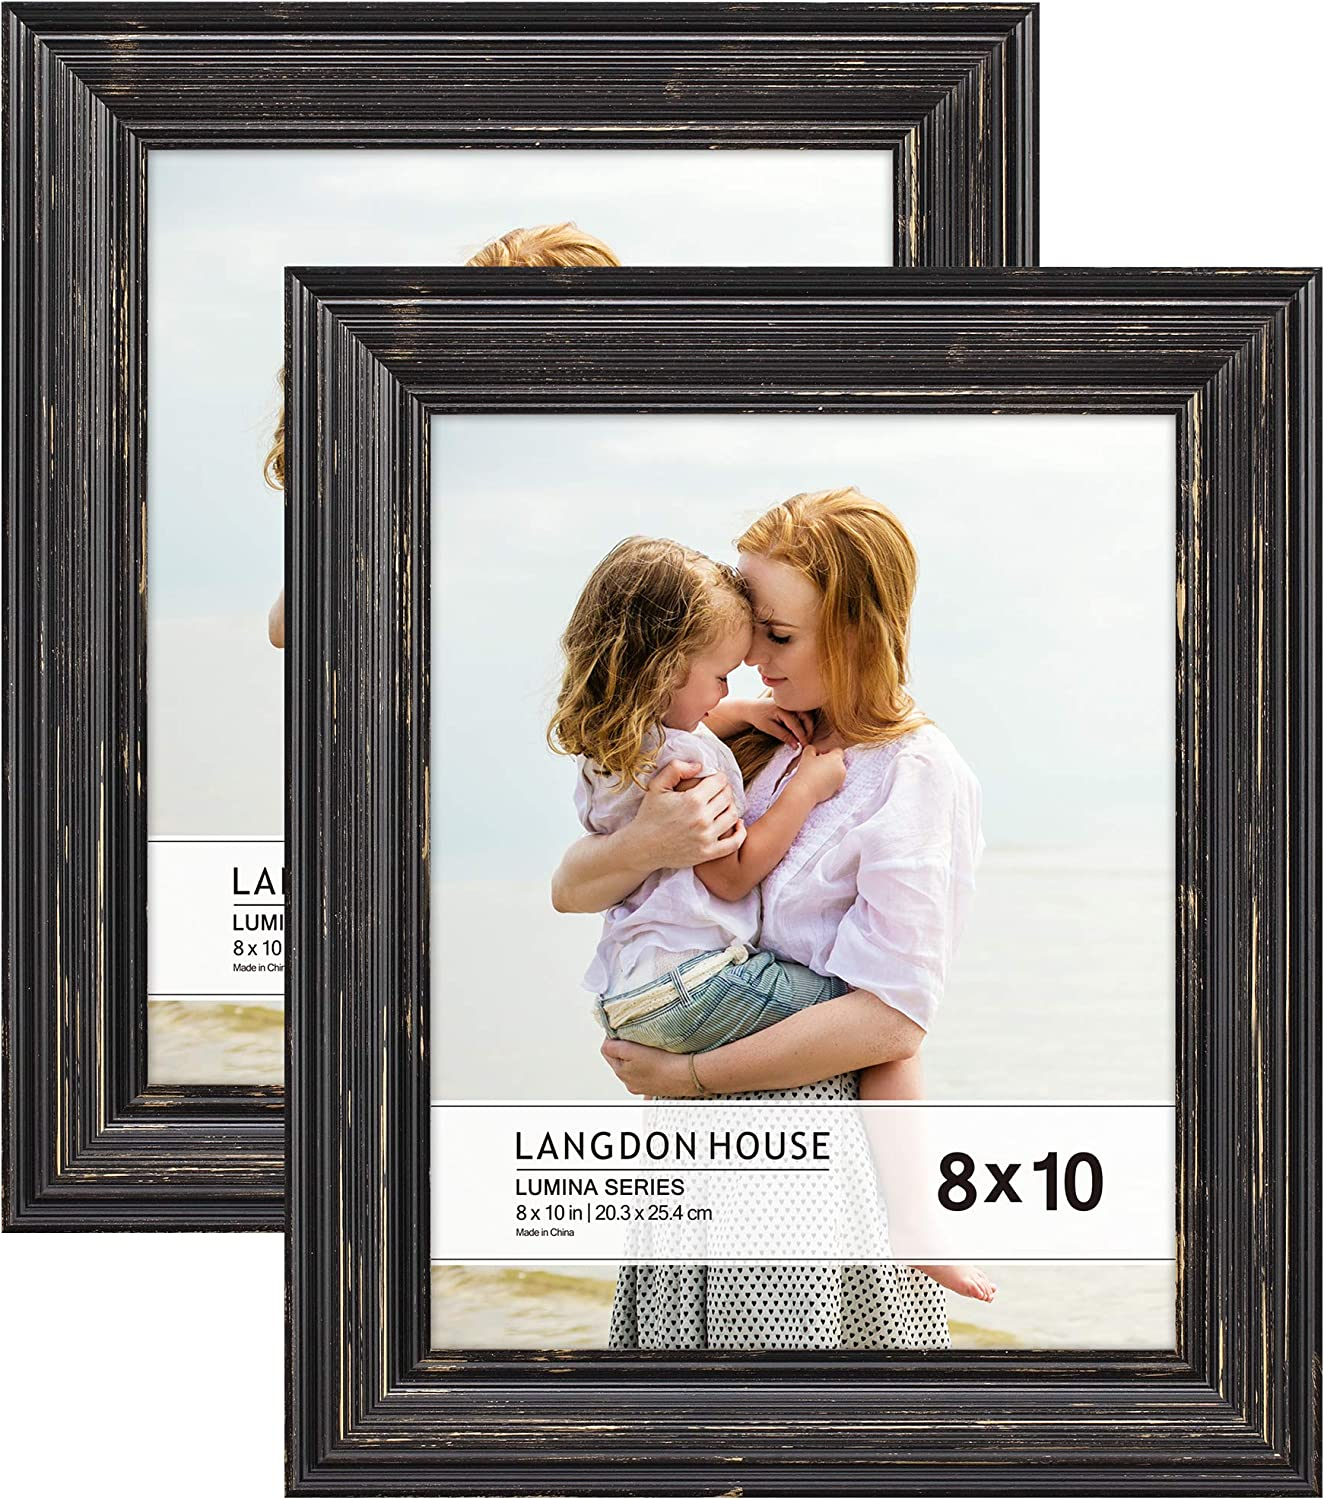 Langdon House 8x10 Real Wood Picture Frames 2 Pack Barnwood Brown Gold Accents Brown Wooden Photo Frame 8 X 10 Wall Mount Or Table Top Set Of 2 Lumina Collection Amazon Ca Home Kitchen